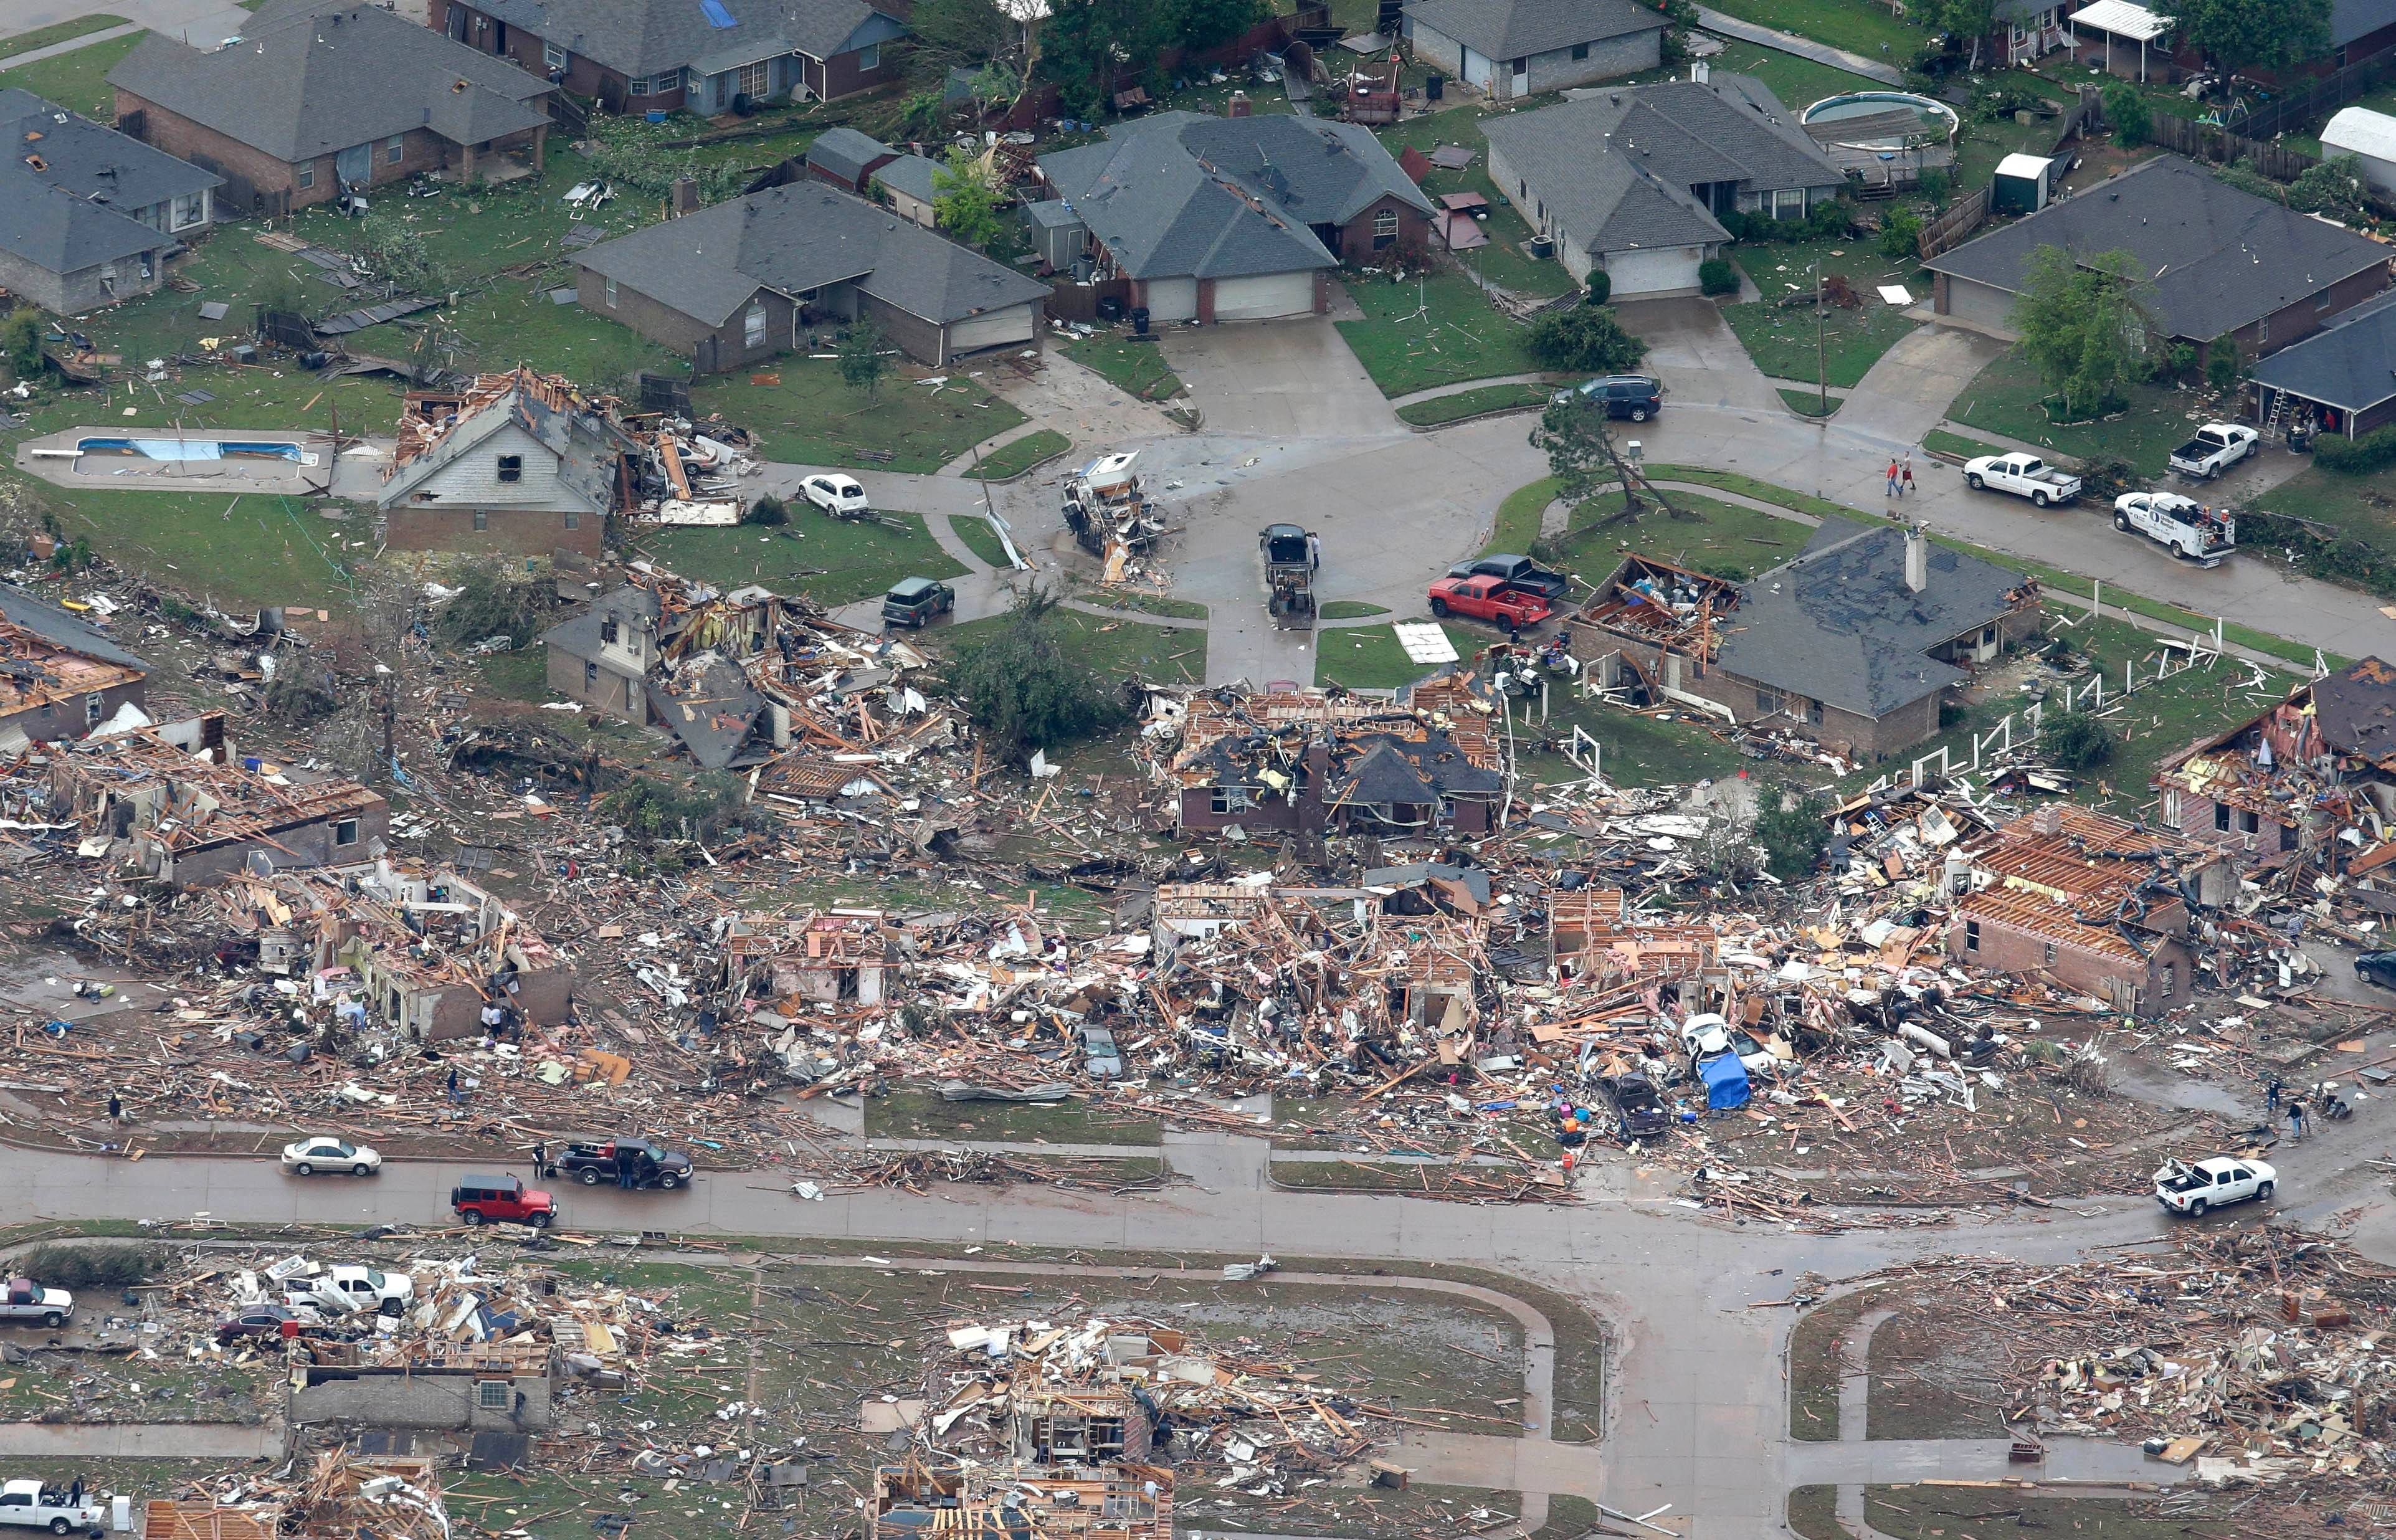 An aerial view shows homes damaged by Monday's tornado as others appear untouched, Tuesday, May 21, 2013, in Moore, Okla.  At least 24 people, including nine children, were killed in the massive tornado that flattened homes and a school in Moore, on Monday afternoon.